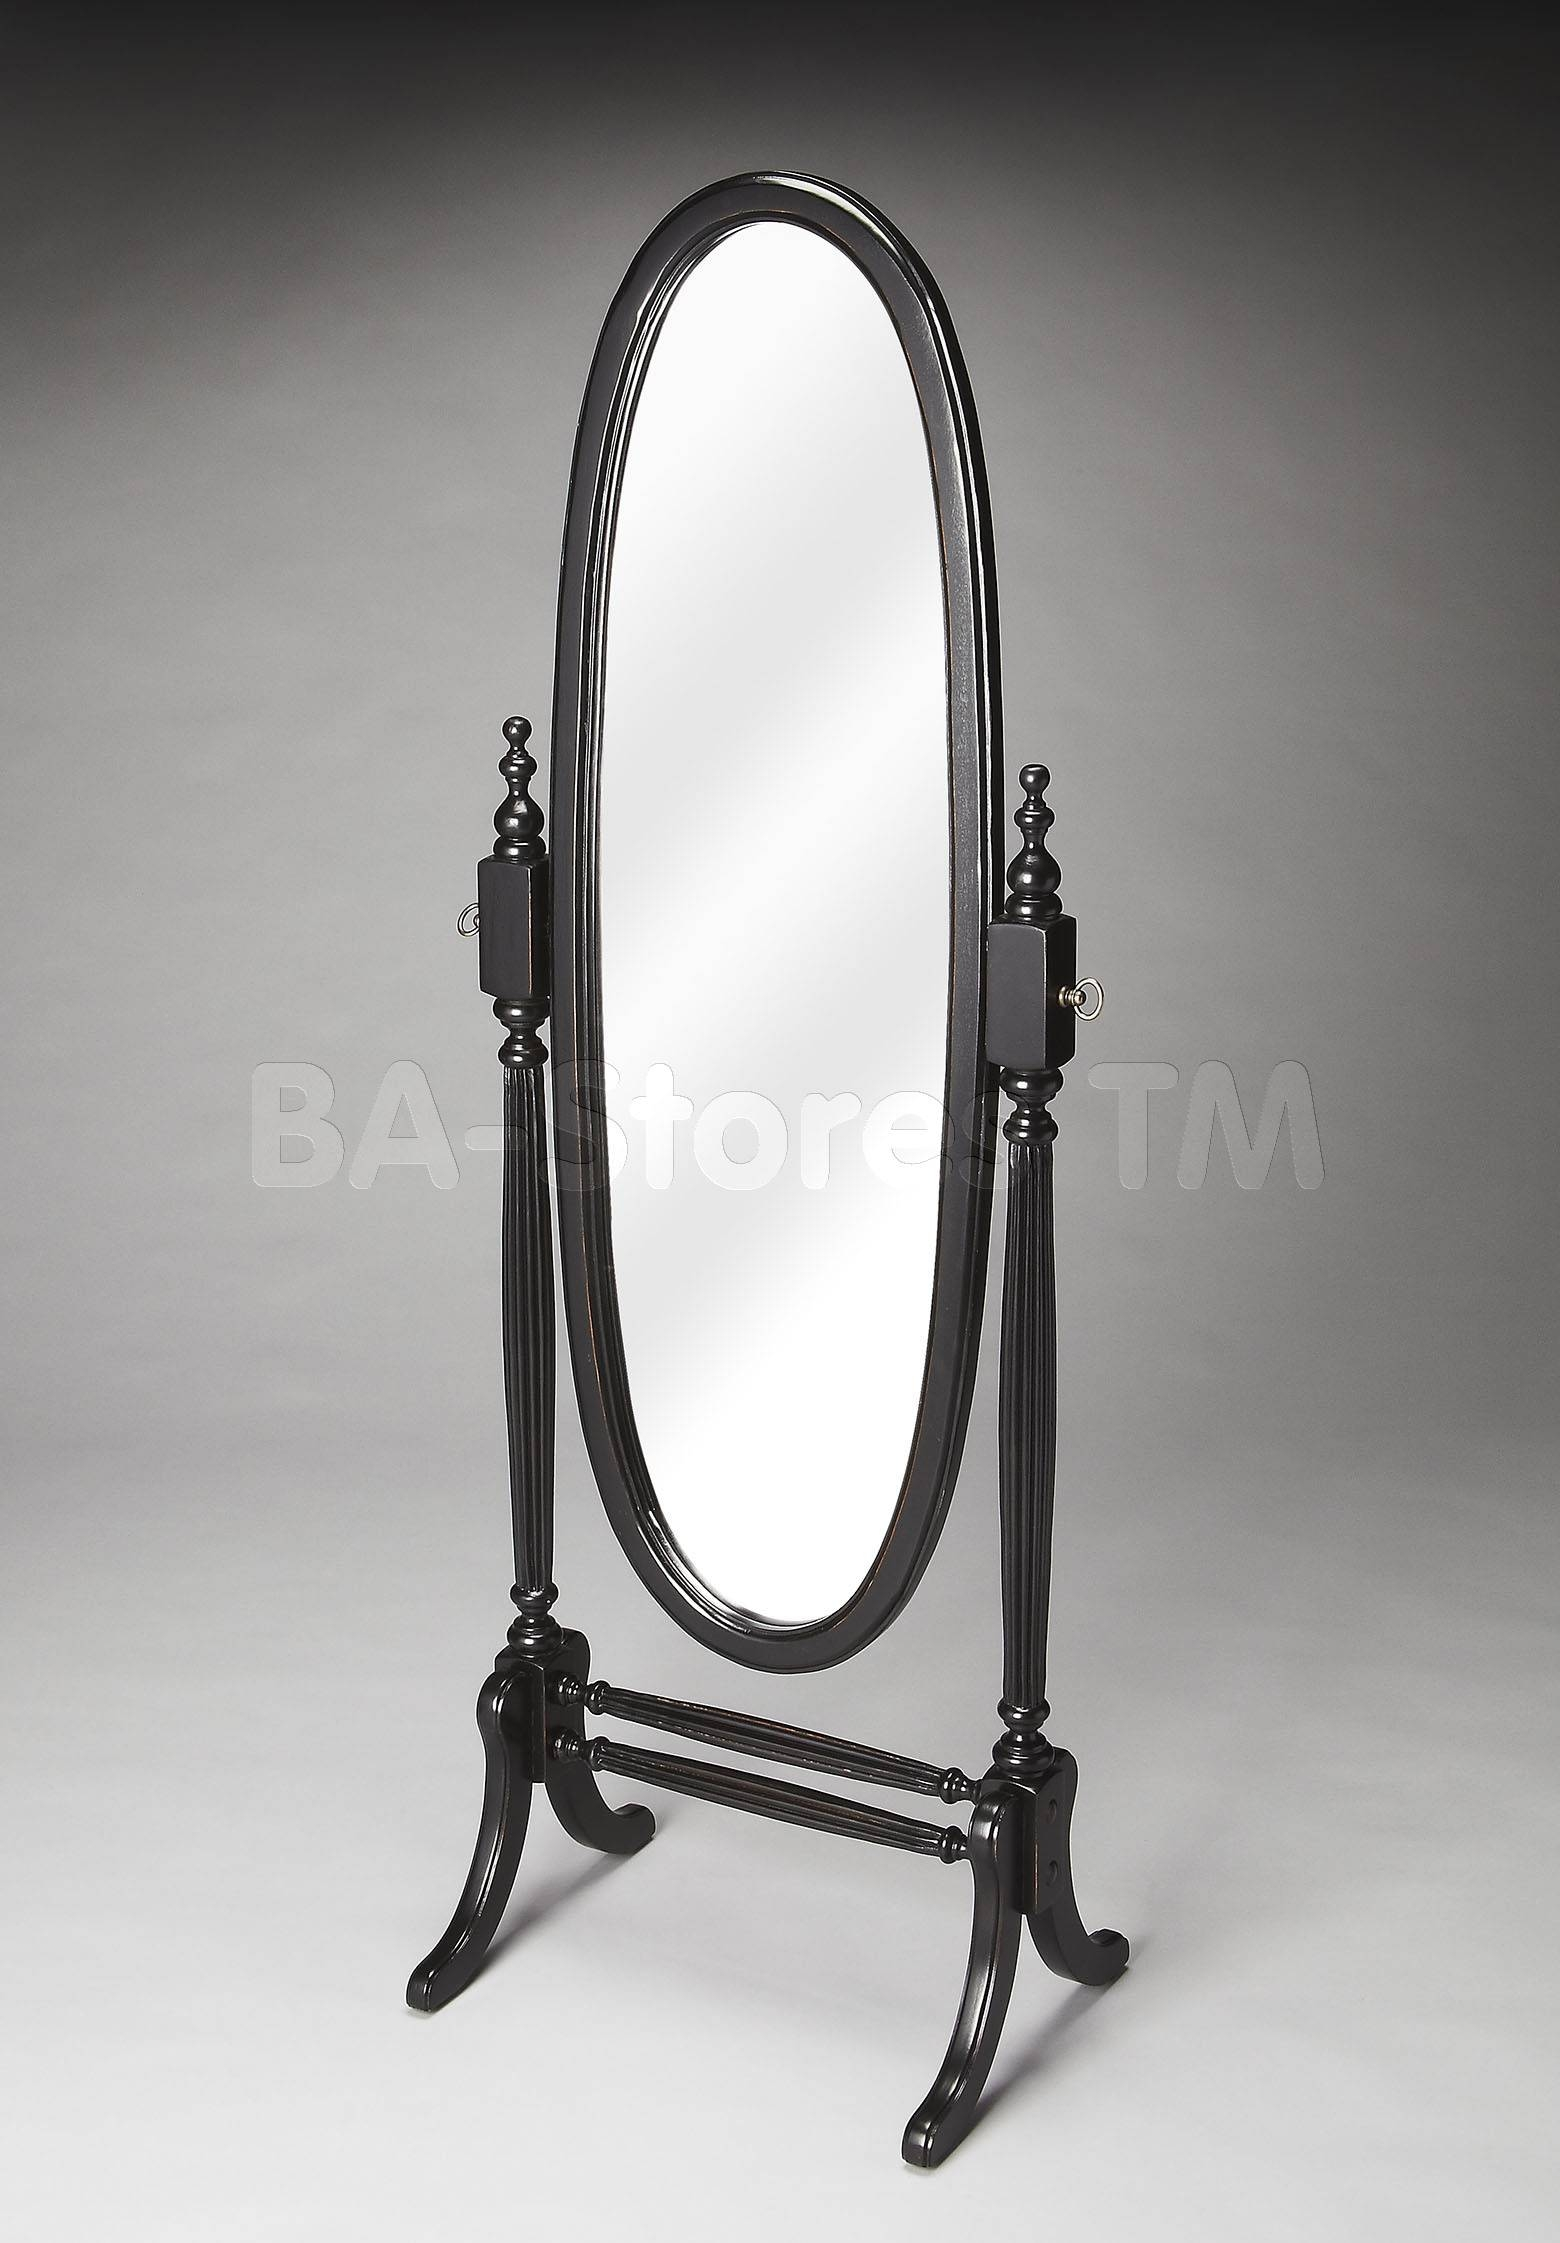 Furniture: Charming Cheval Mirror Jewelry Armoire Ideas regarding Black Free Standing Mirrors (Image 7 of 15)